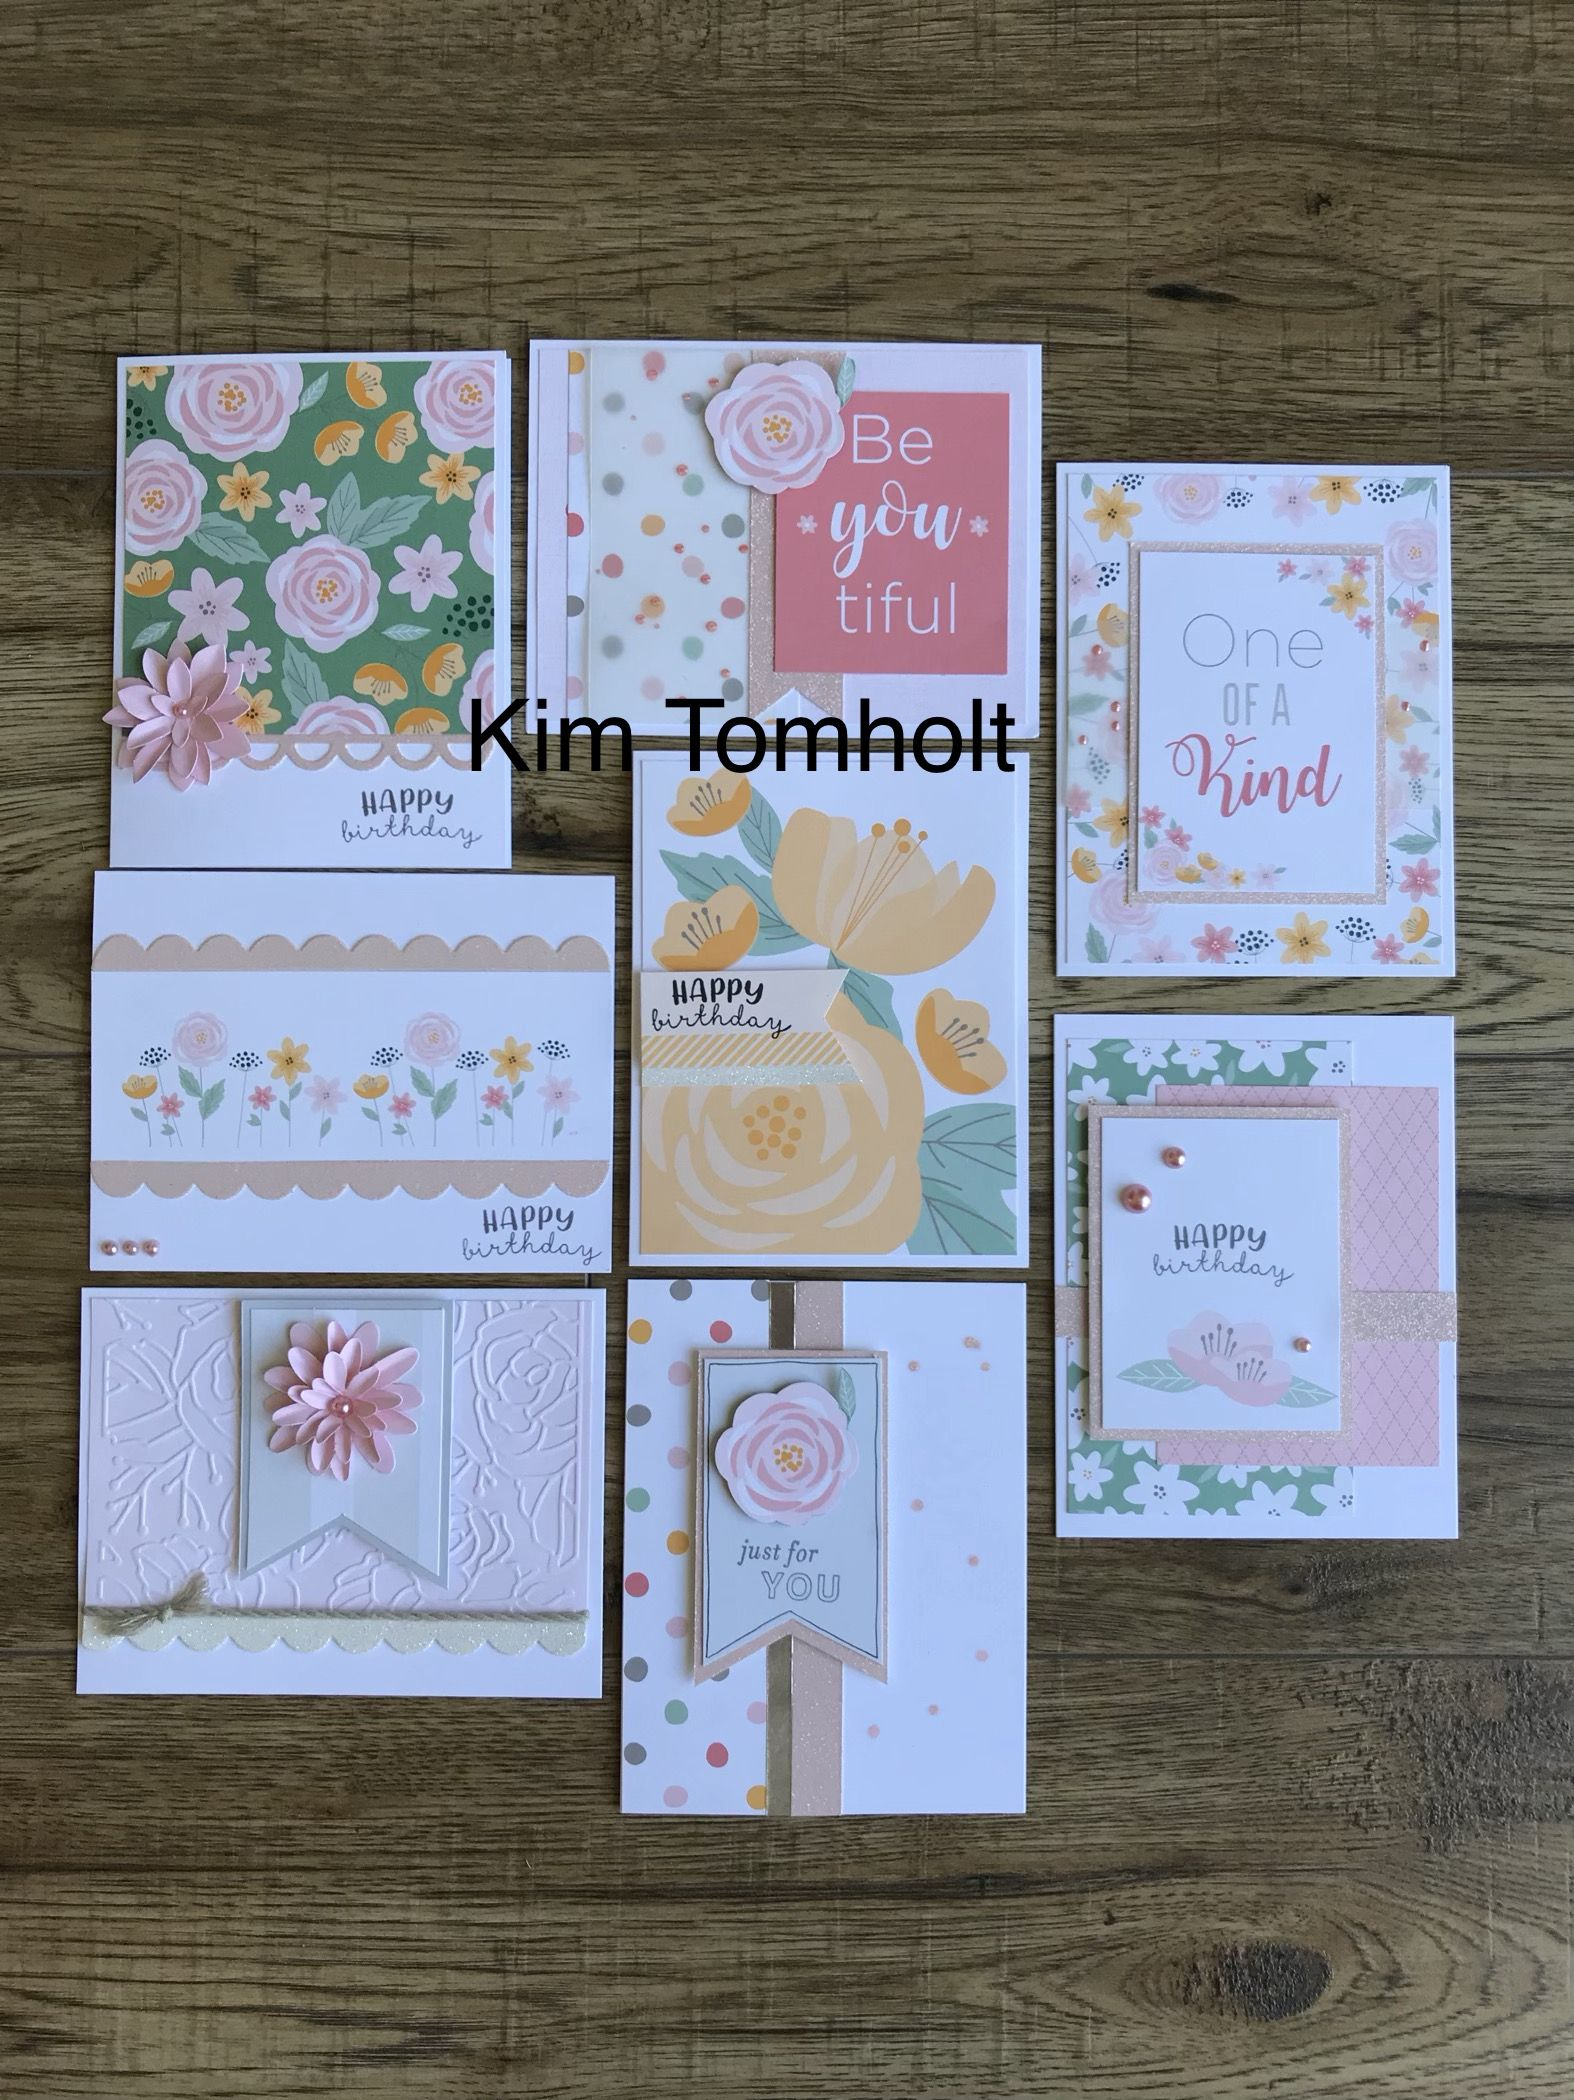 Cards Created By Kim Tomholt Using The Picture My Life Be You Tiful